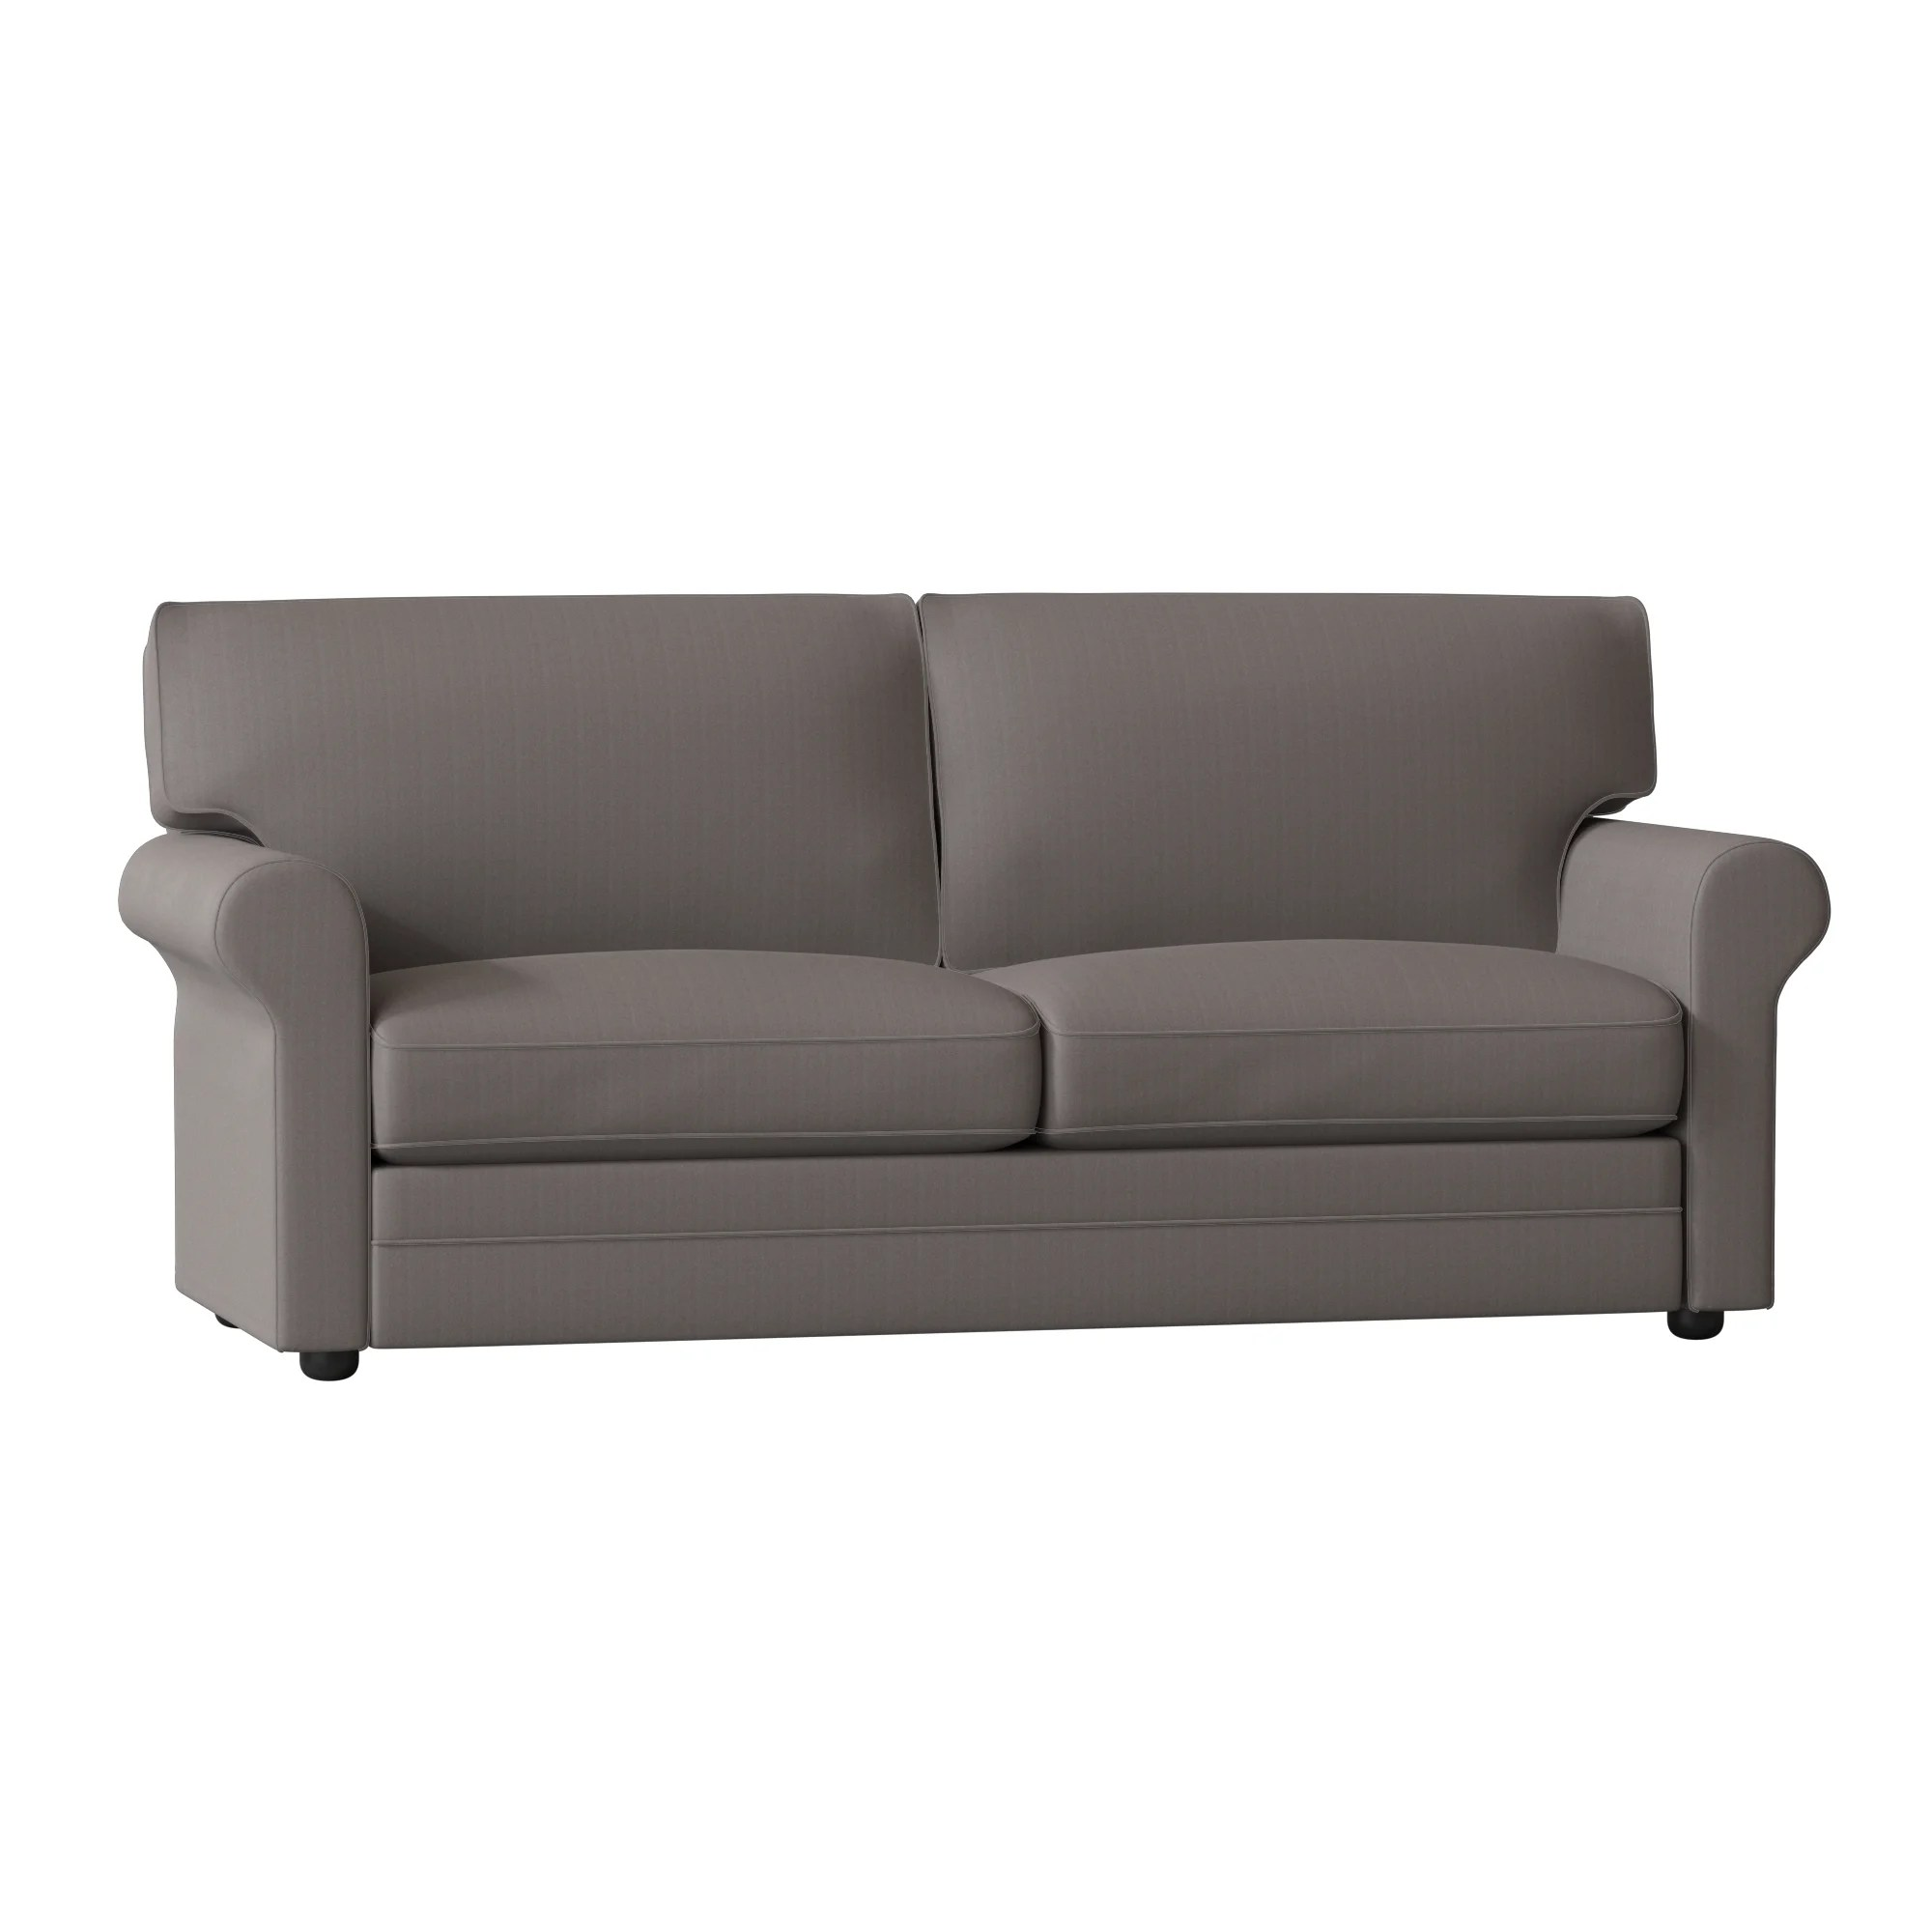 Xxl Sofa Willhaben Ikea Mandal Willhaben